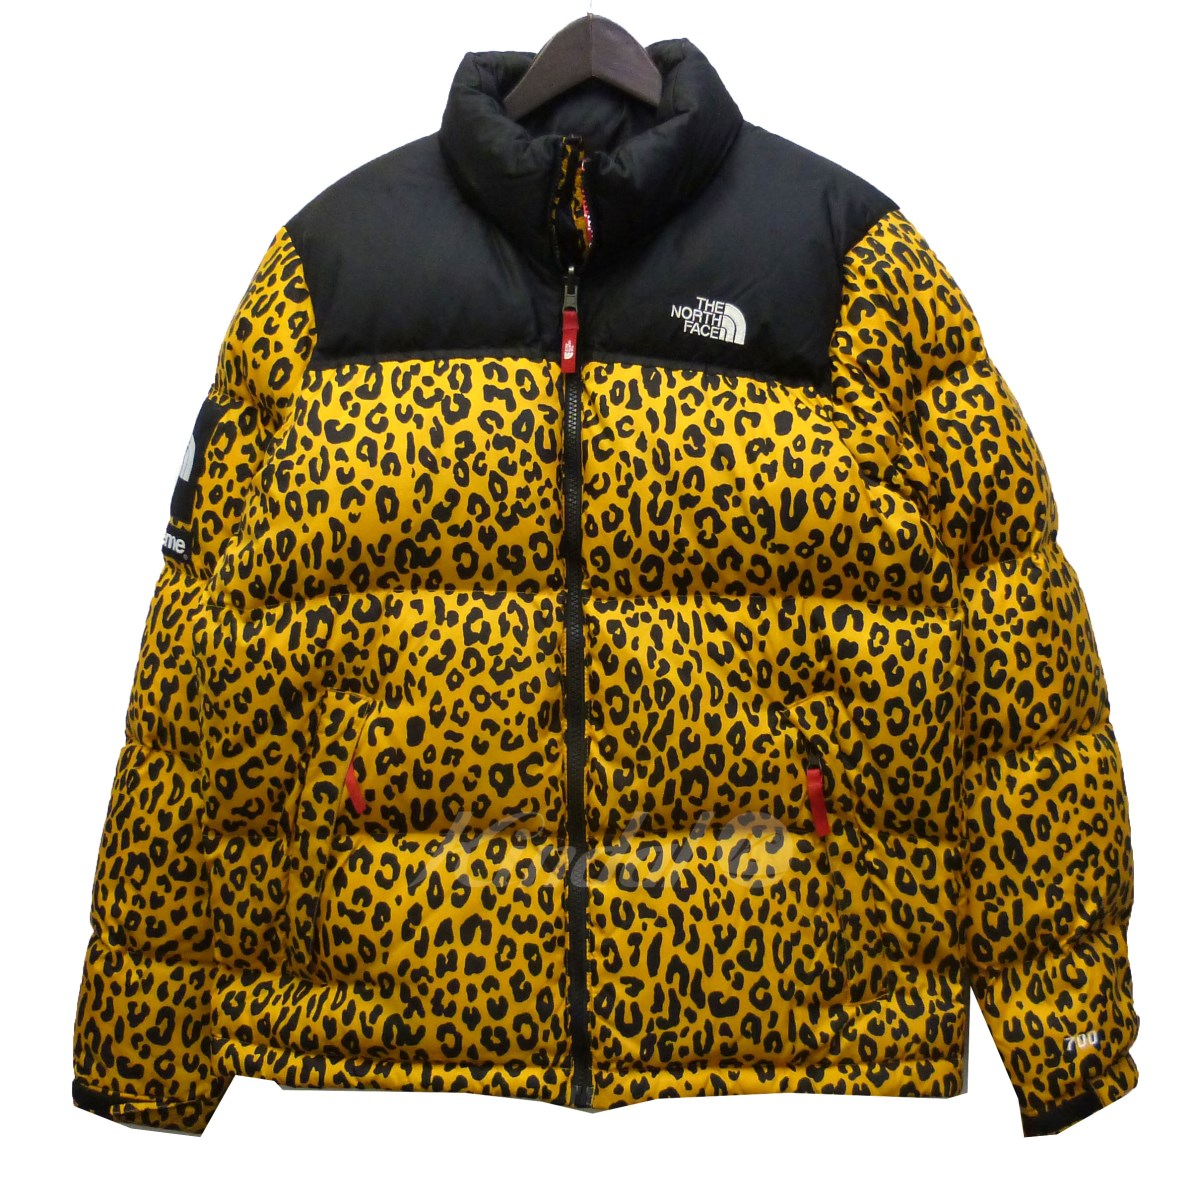 【中古】Supreme x THE NORTH FACE 11AW「Nuptse Down Jacket」レオパードダウンジャケット 【送料無料】 【026096】 【KIND1550】